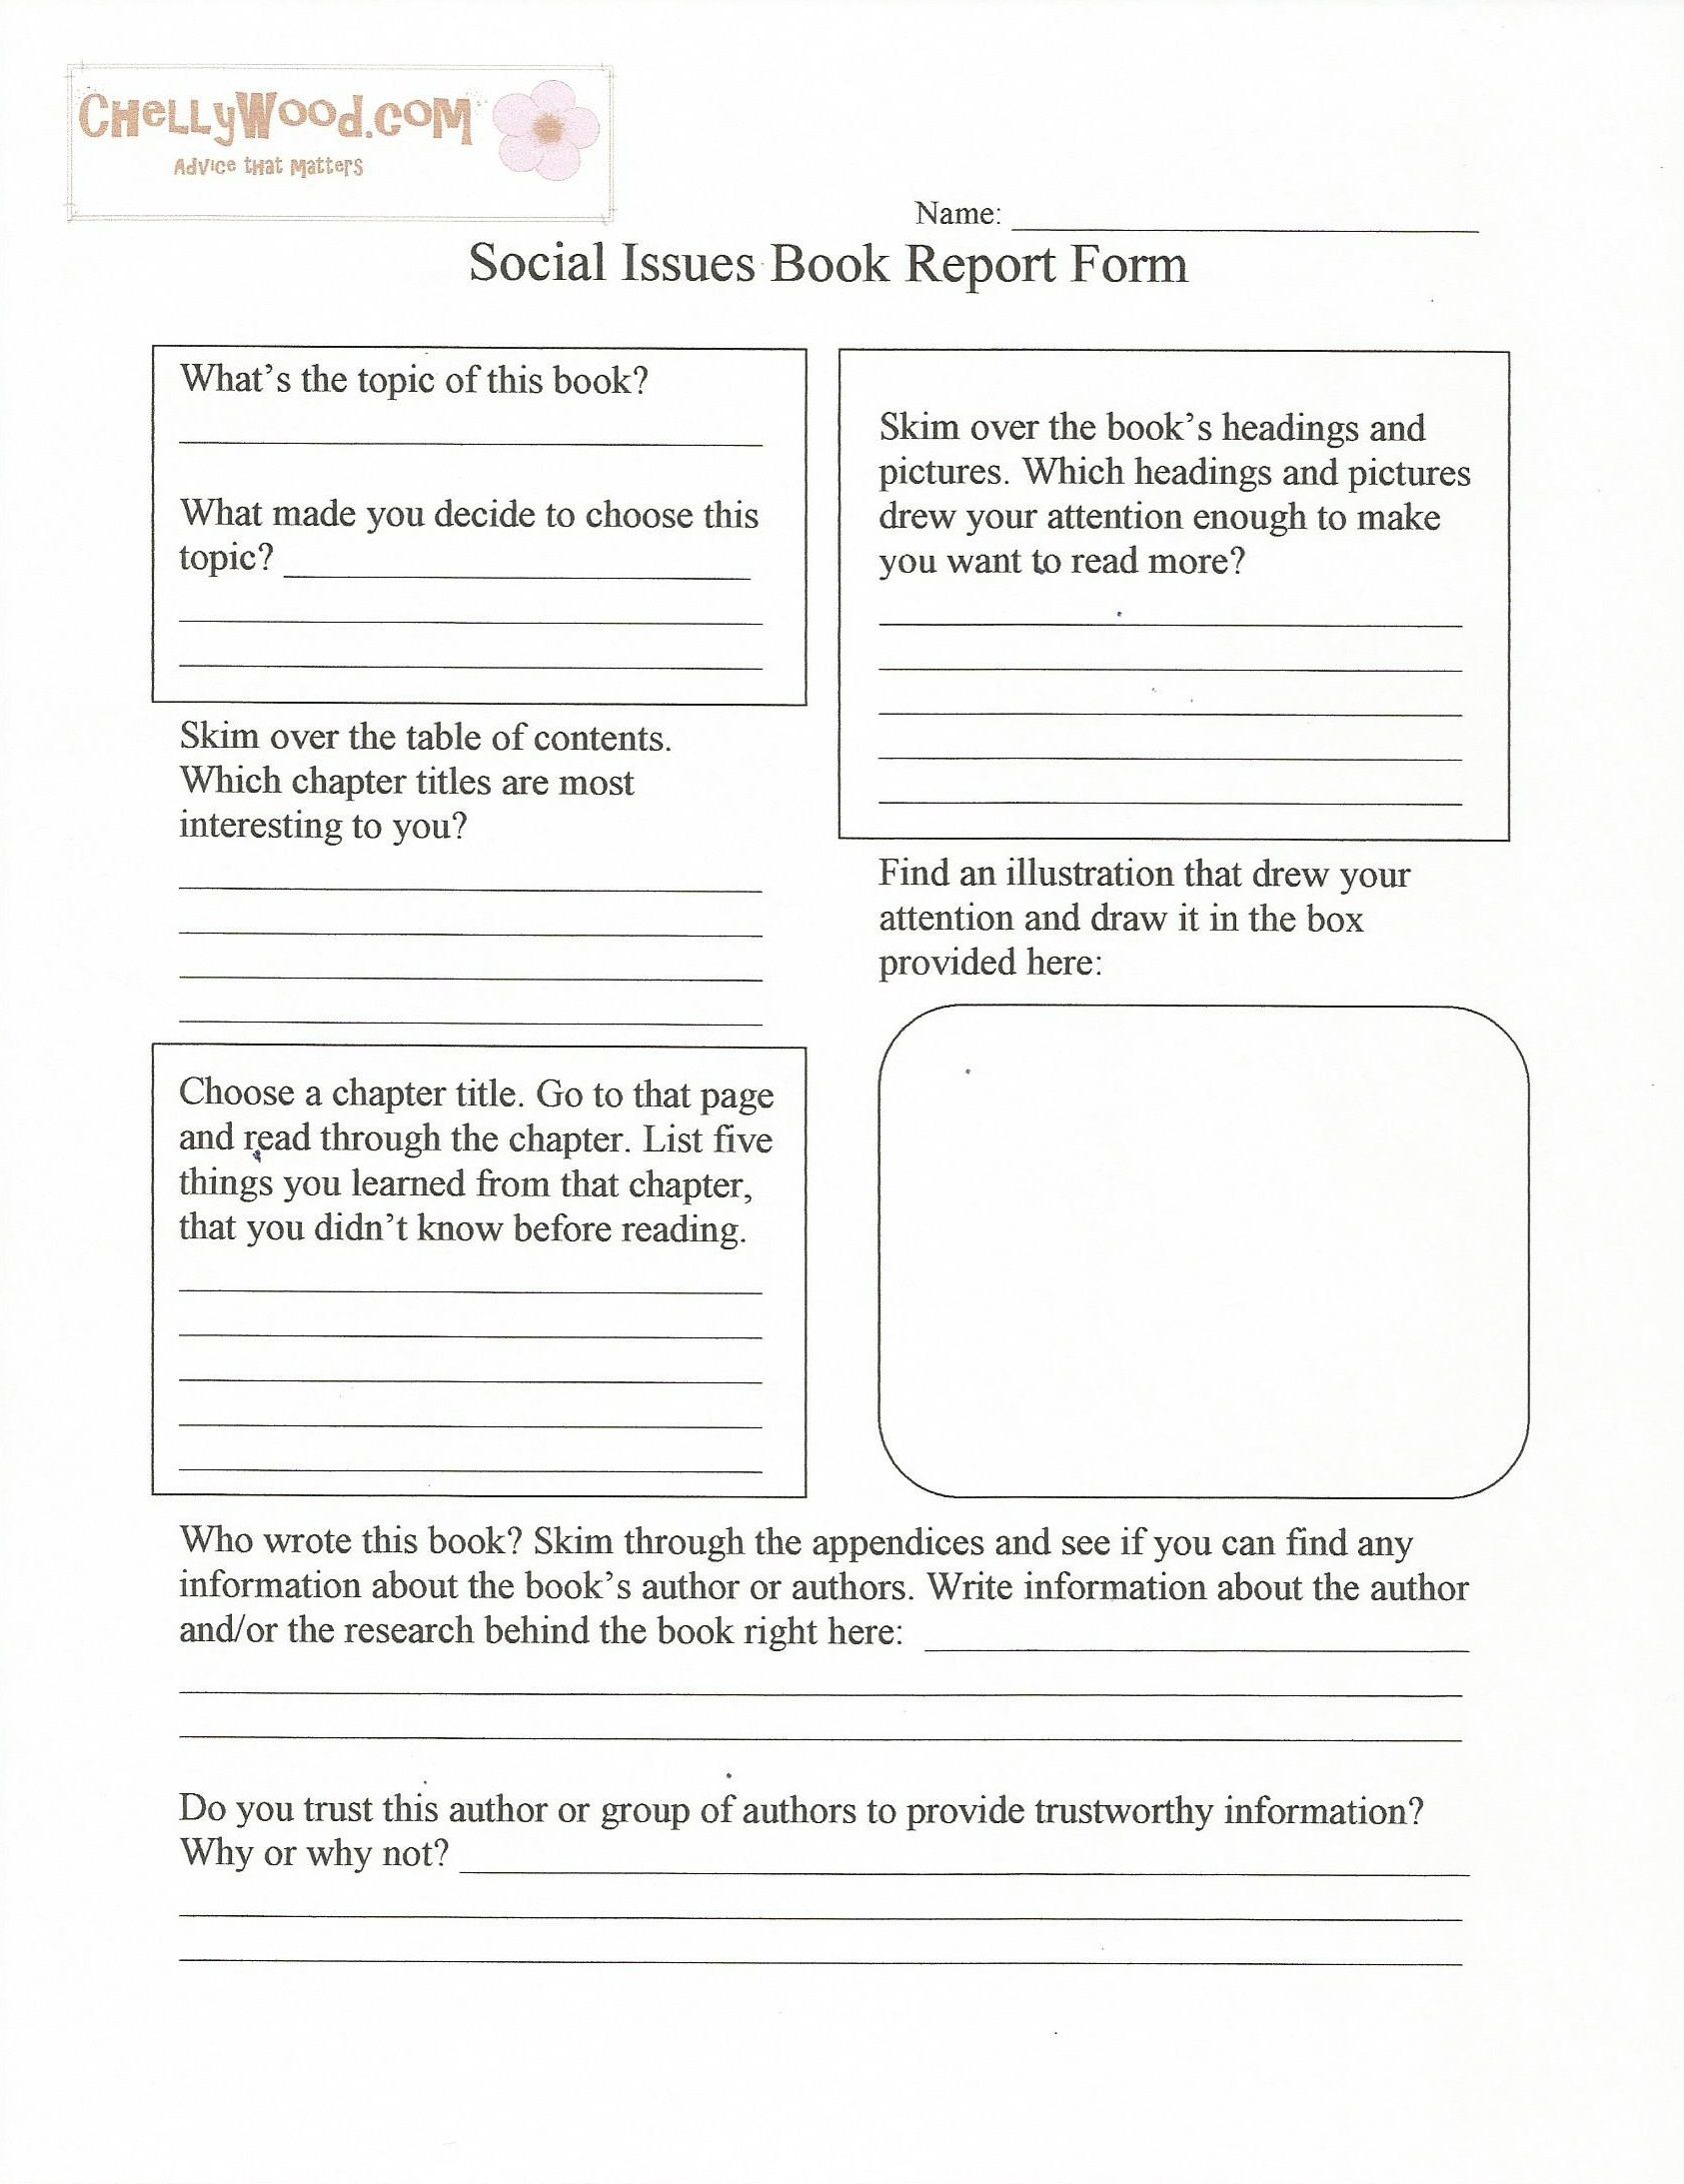 nonfiction social issues book report form pg comes from my nonfiction social issues book report form pg 1 comes from my educational website englishemporium